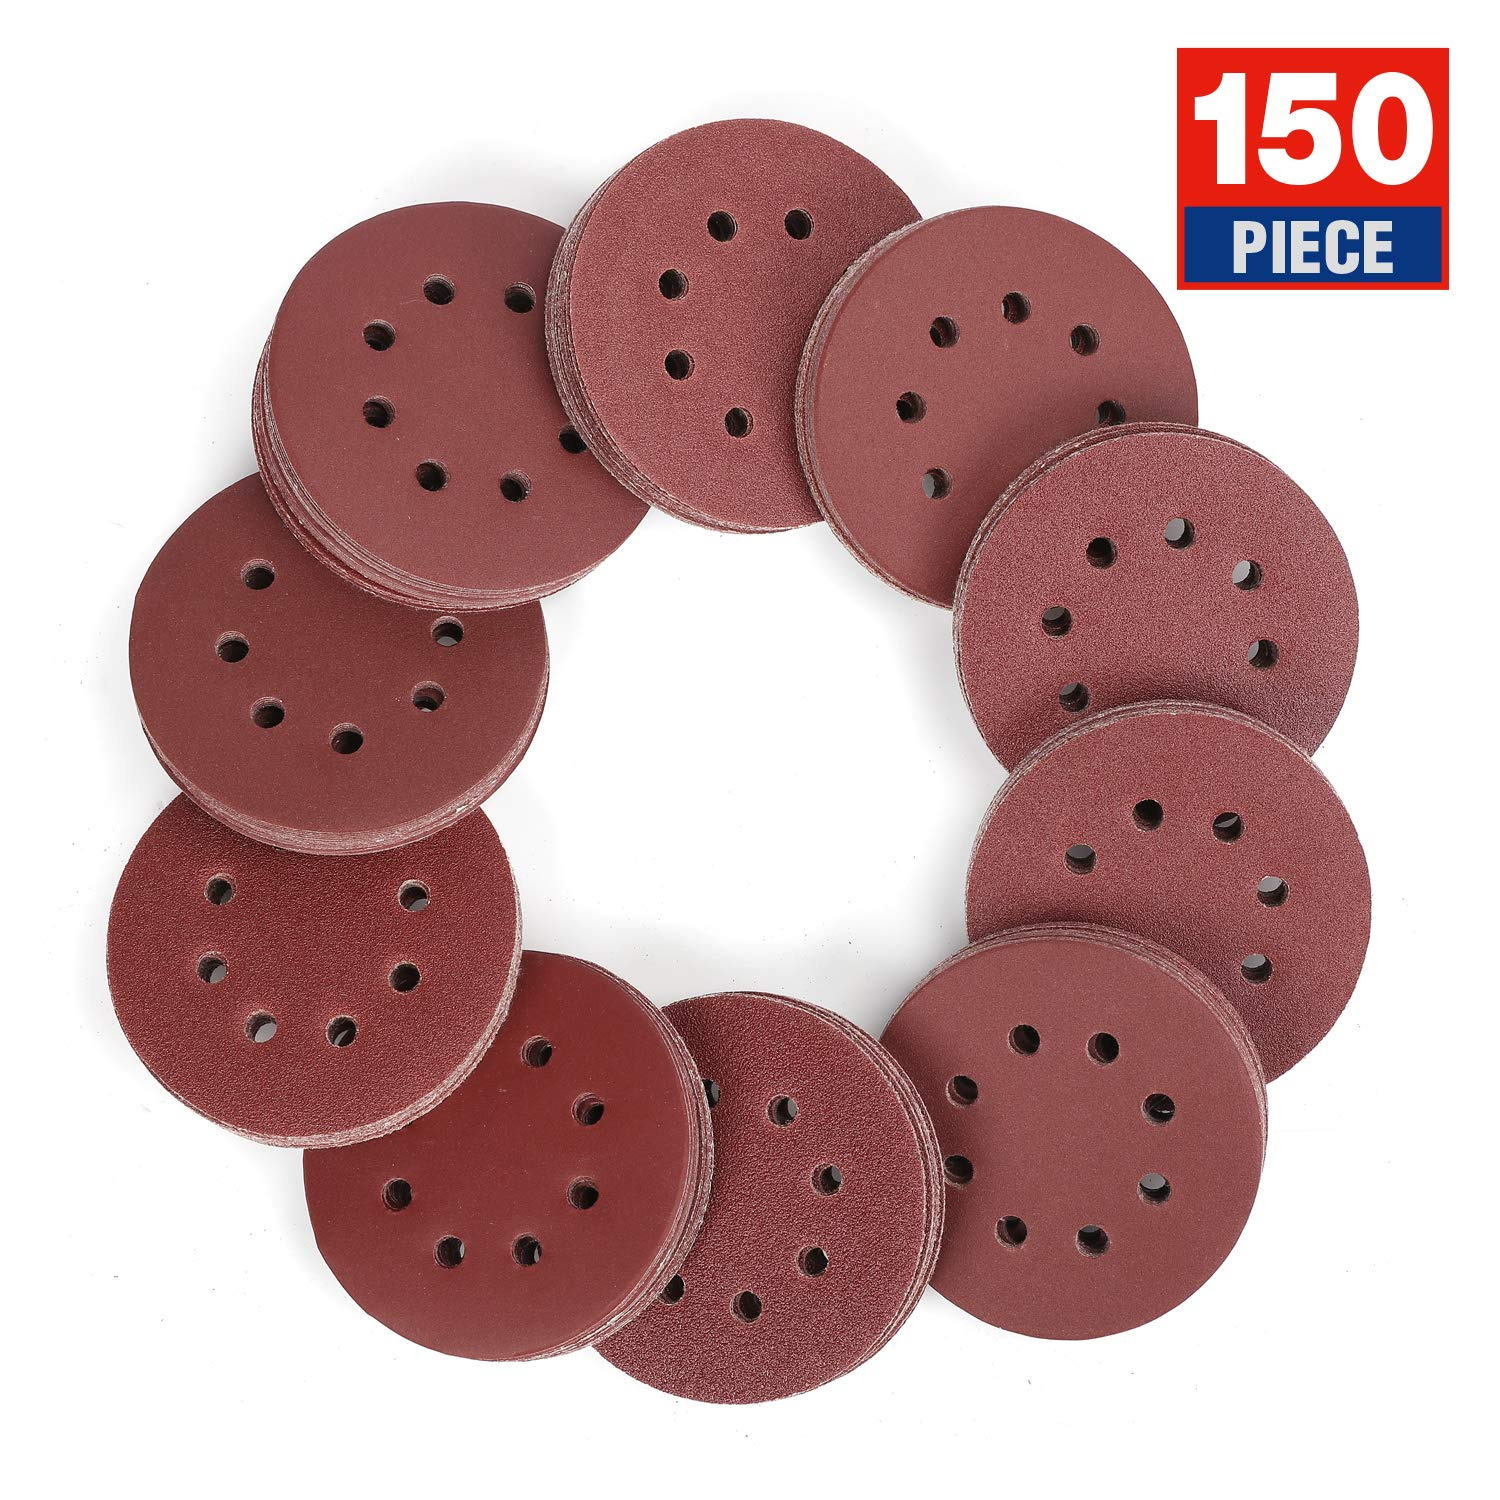 WORKPRO 150-piece Sandpaper Set - 5-Inch 8-Hole Sanding Discs 10 Grades Includ 60, 80, 100, 120, 150,180, 240, 320, 400, 600 Grits for Random Orbital Sander (Not for Oscillating Tools or Mouse Sander) by WORKPRO